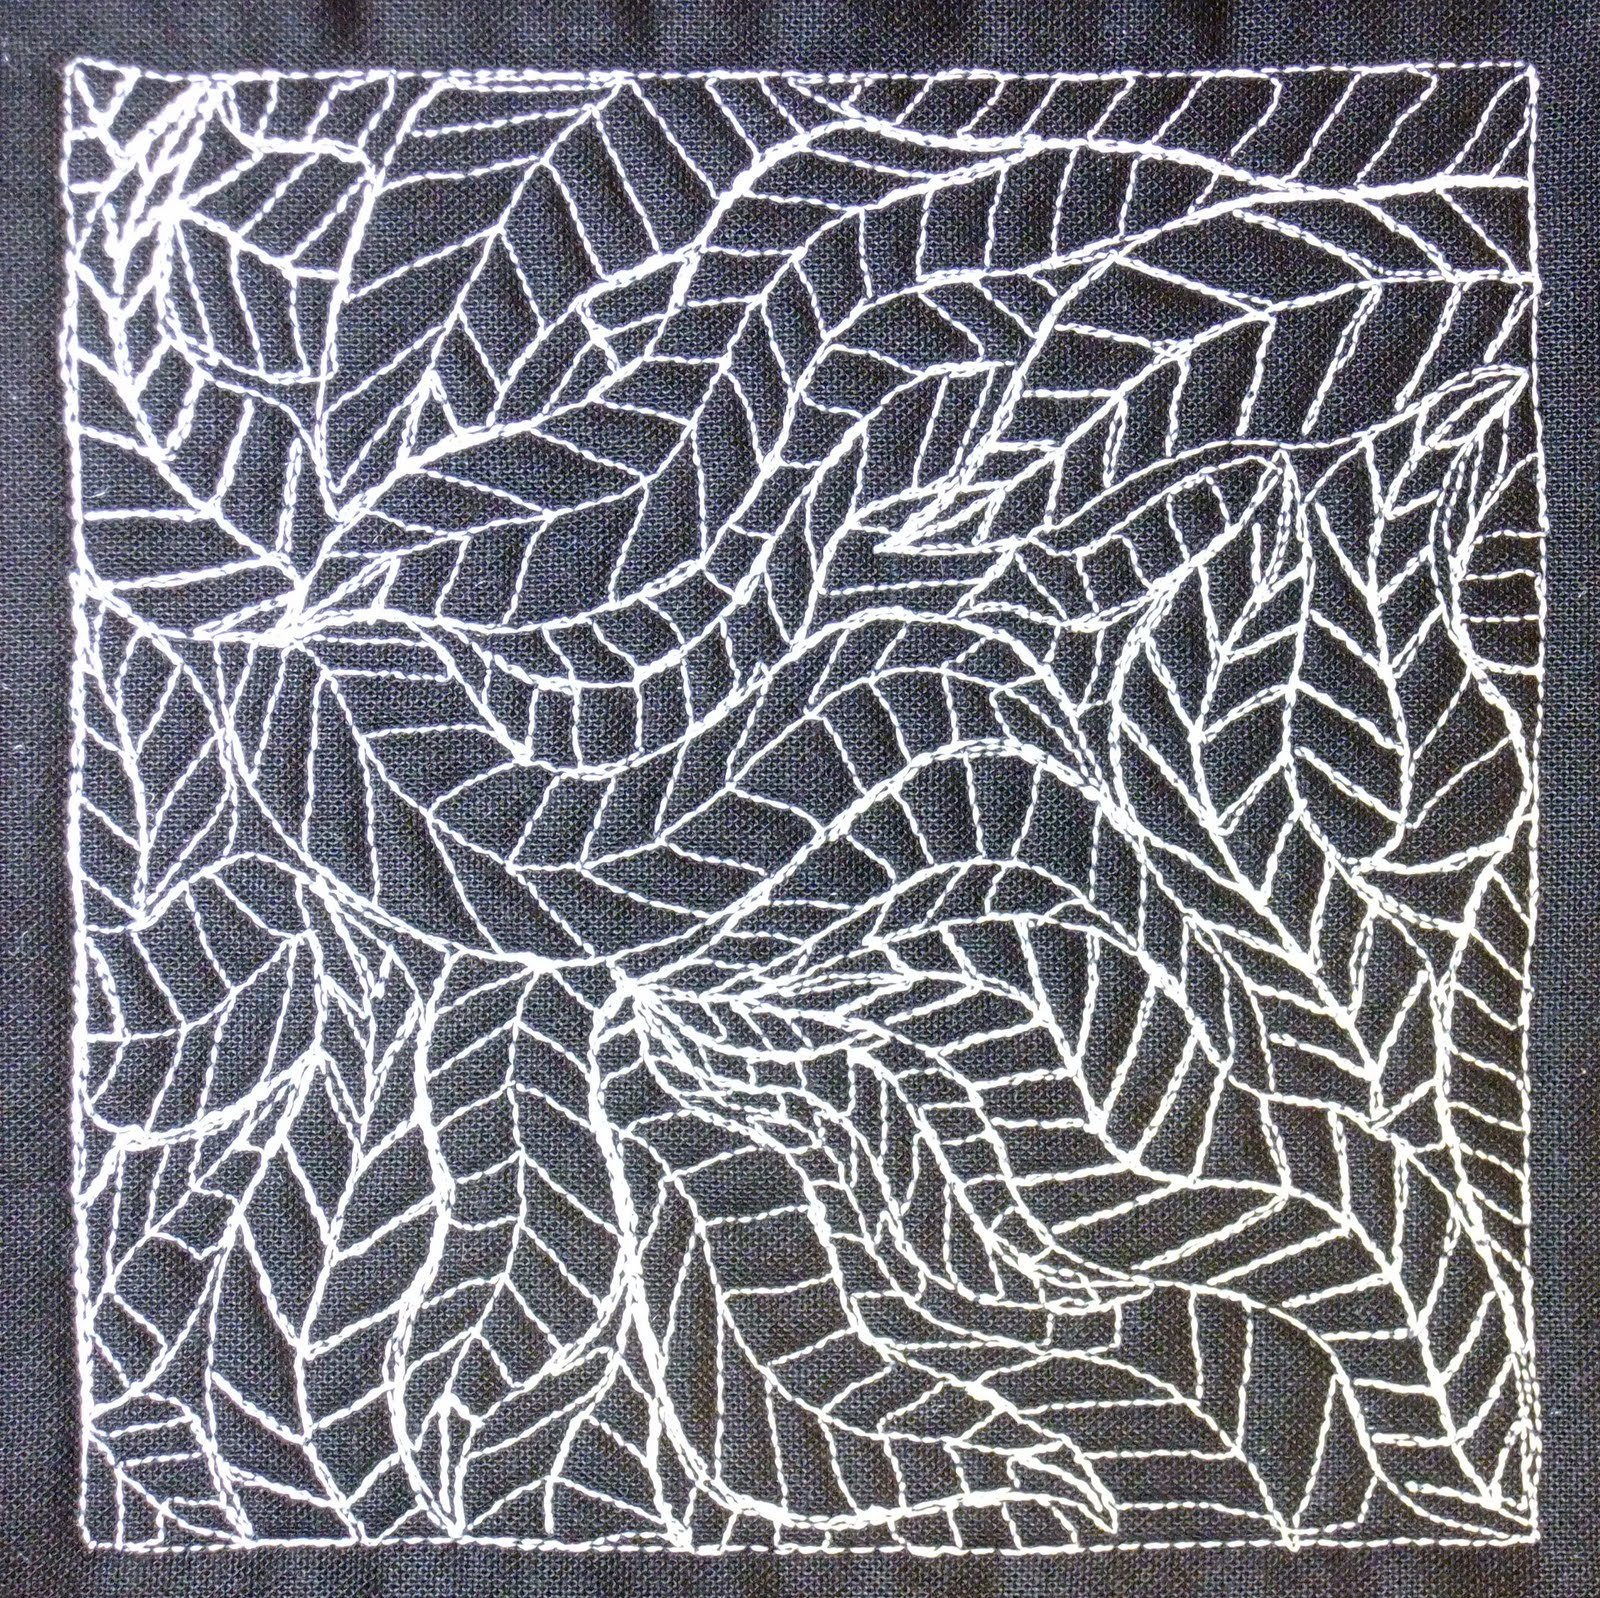 Free Motion Quilting Patterns Leaves : The Free Motion Quilting Project: Day 260 - Leaf Filler